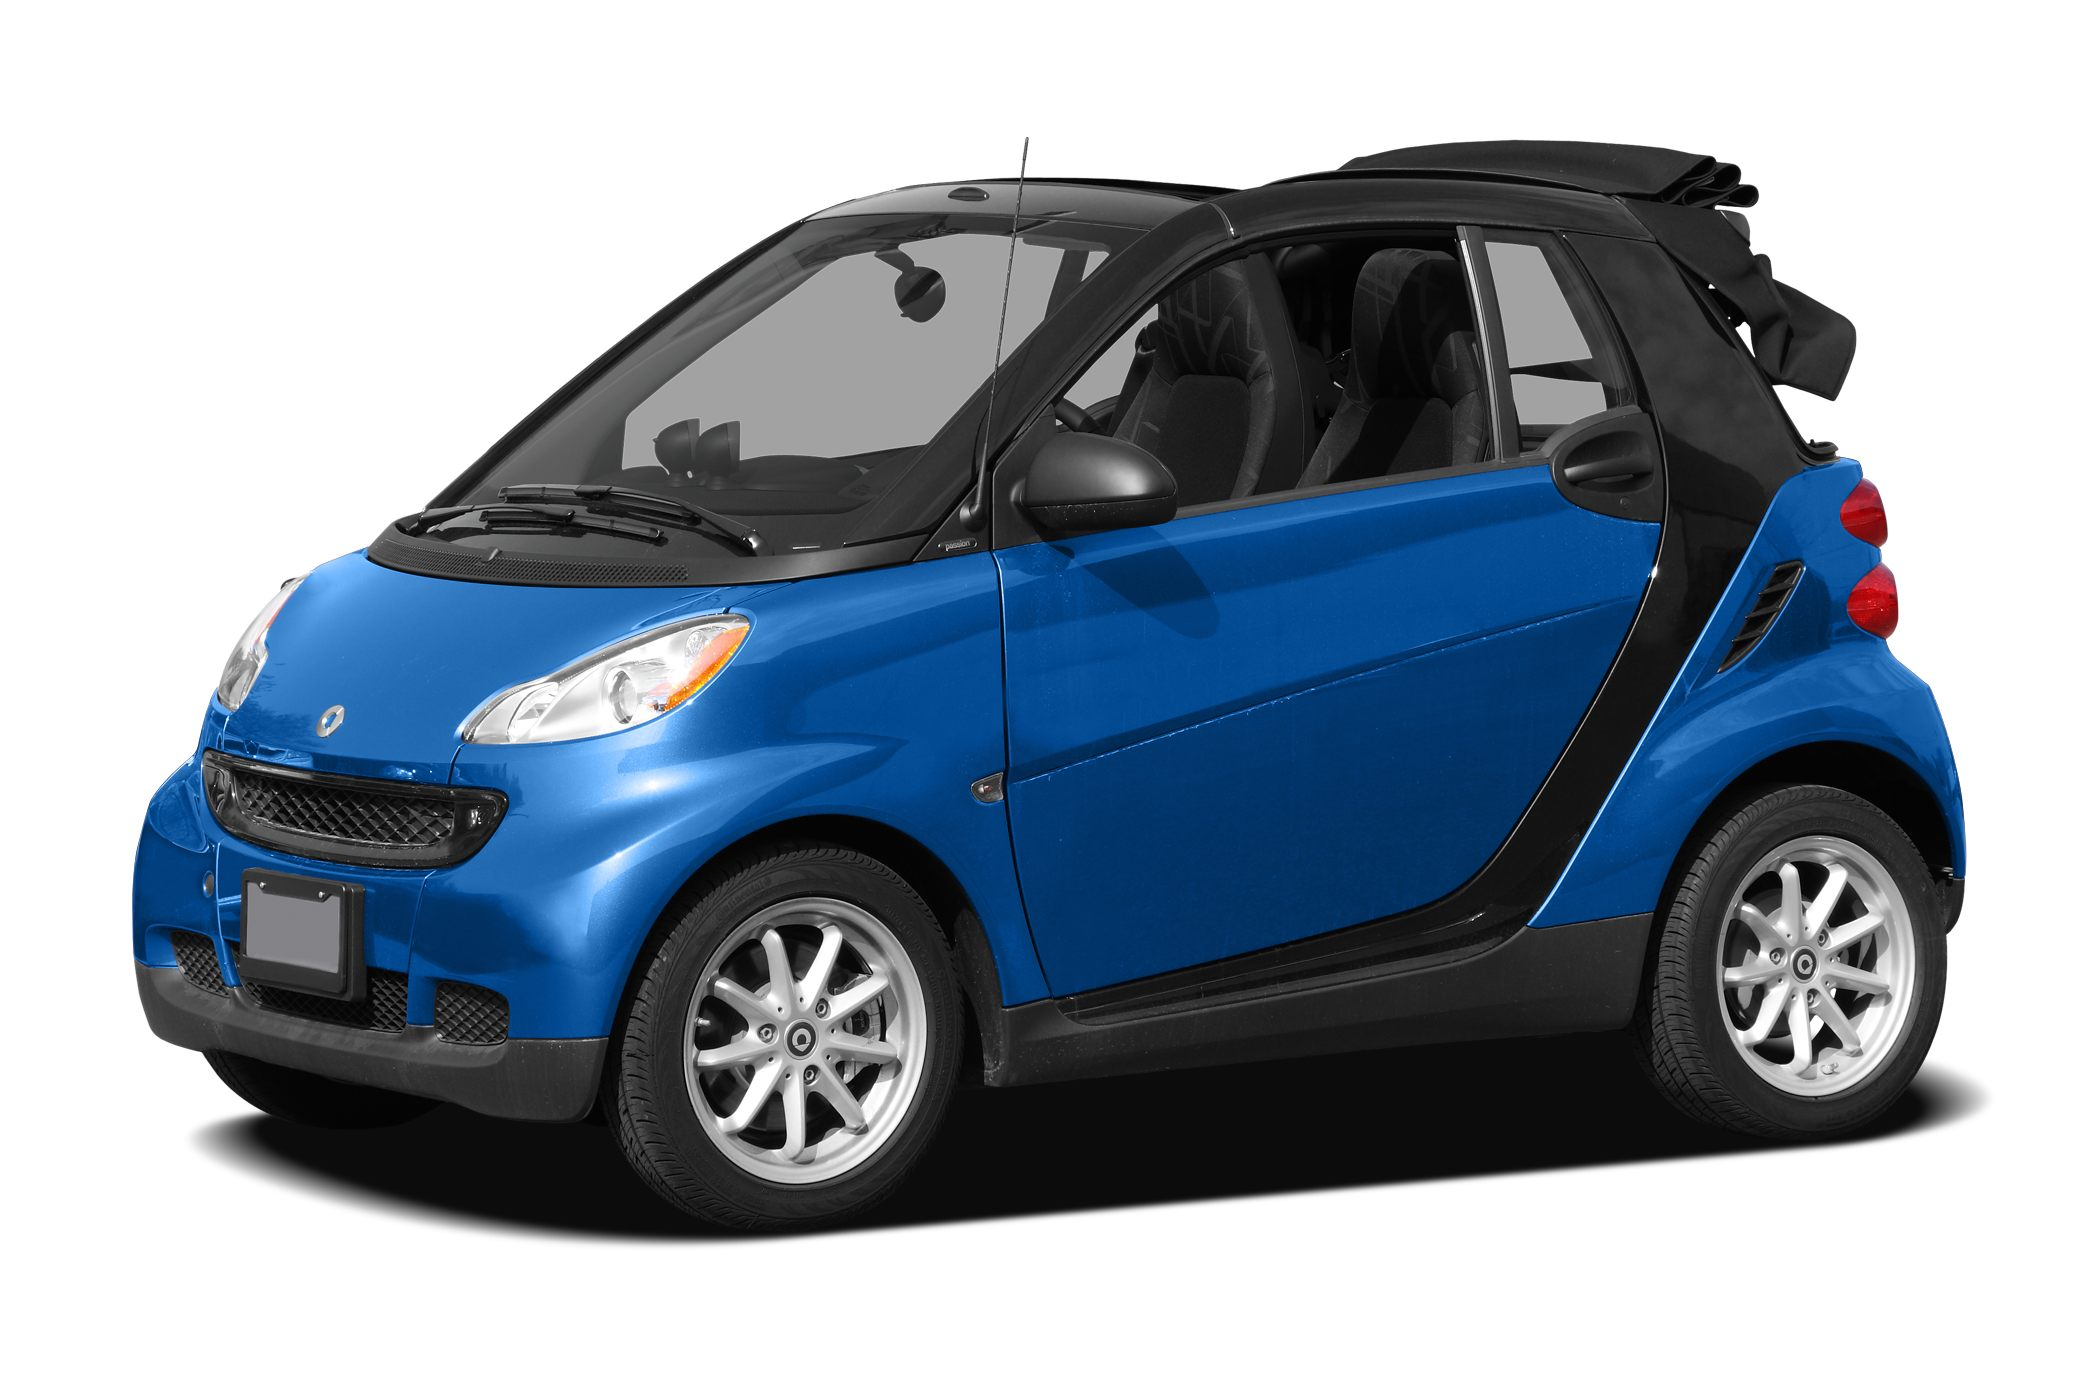 2009 Smart Fortwo Specs